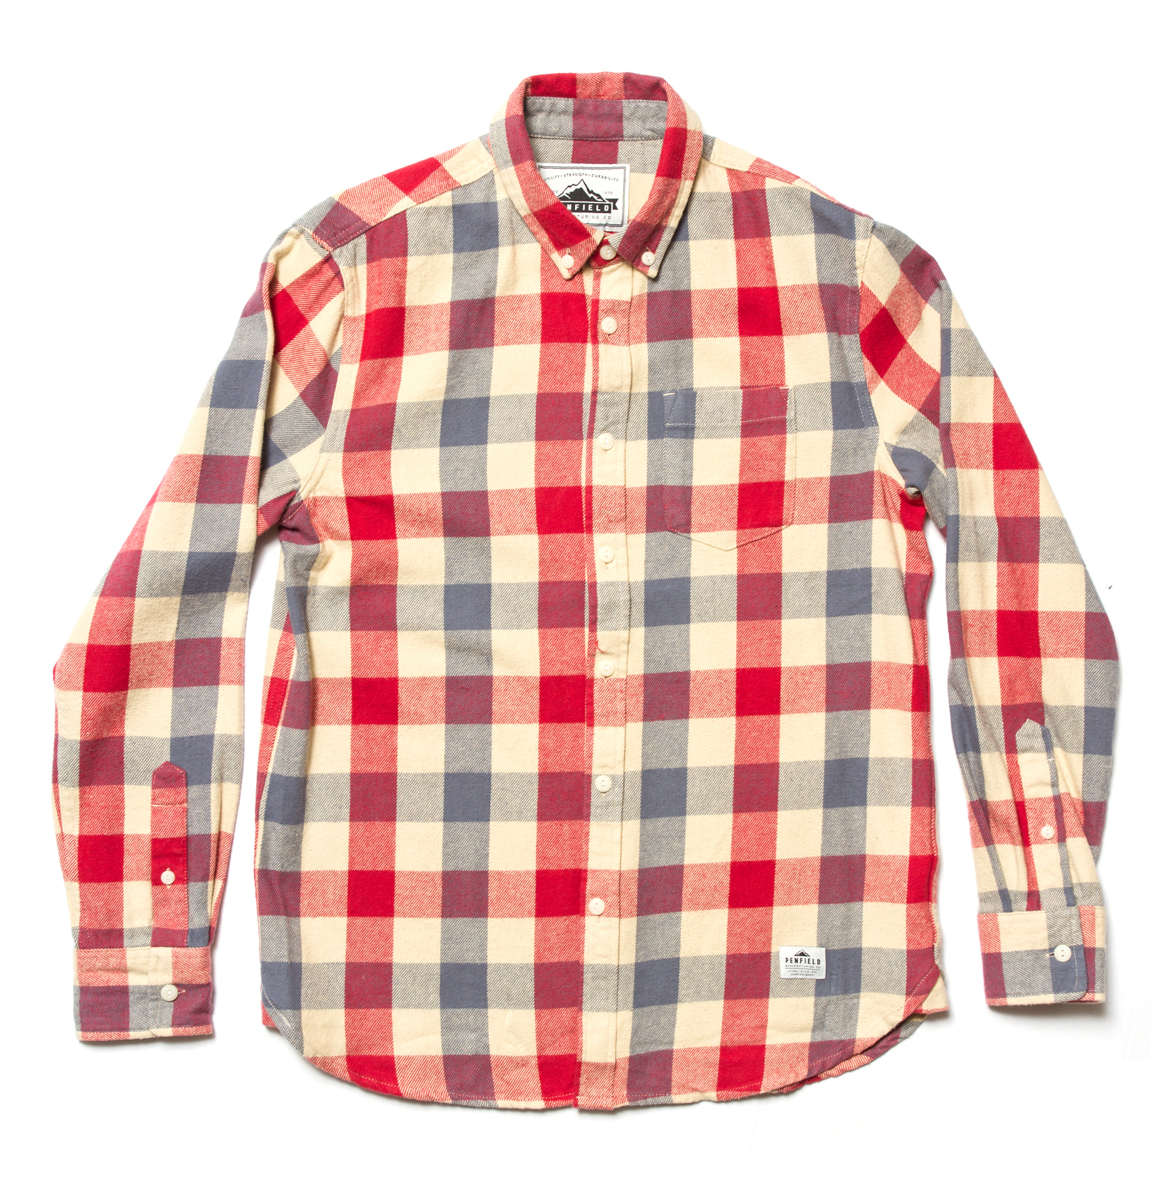 Penfield   Kimberton Shirt  £65